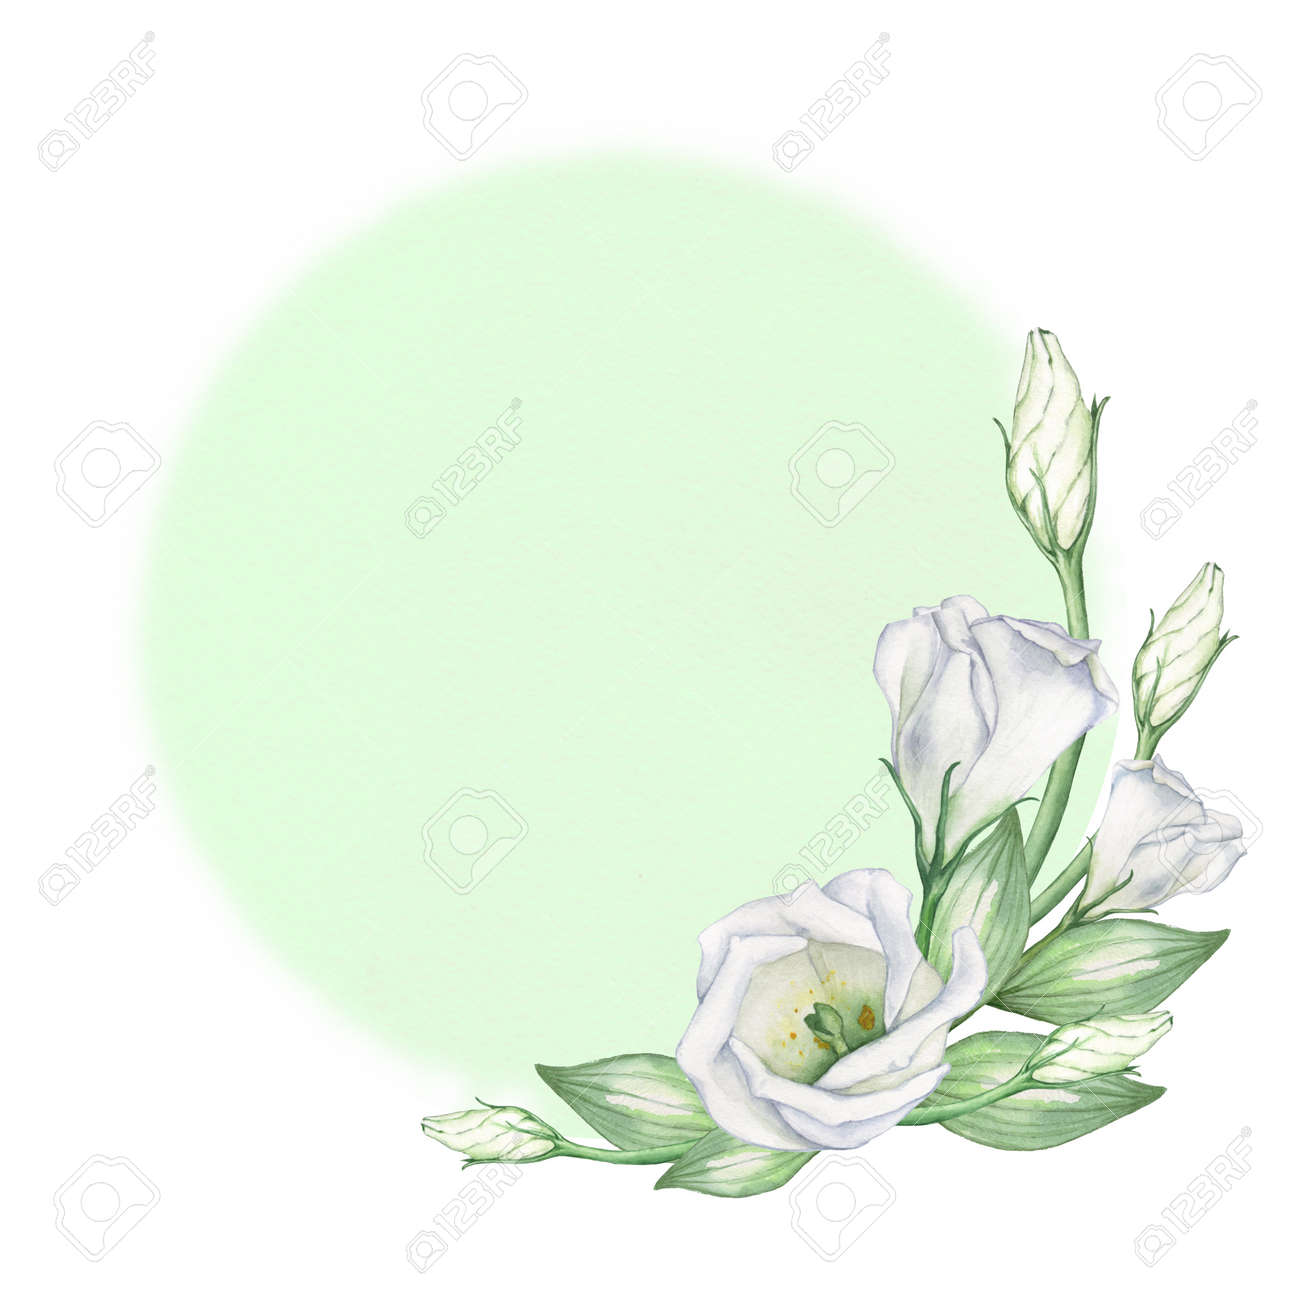 Green Round Background With White Flowers The Texture Of Watercolor